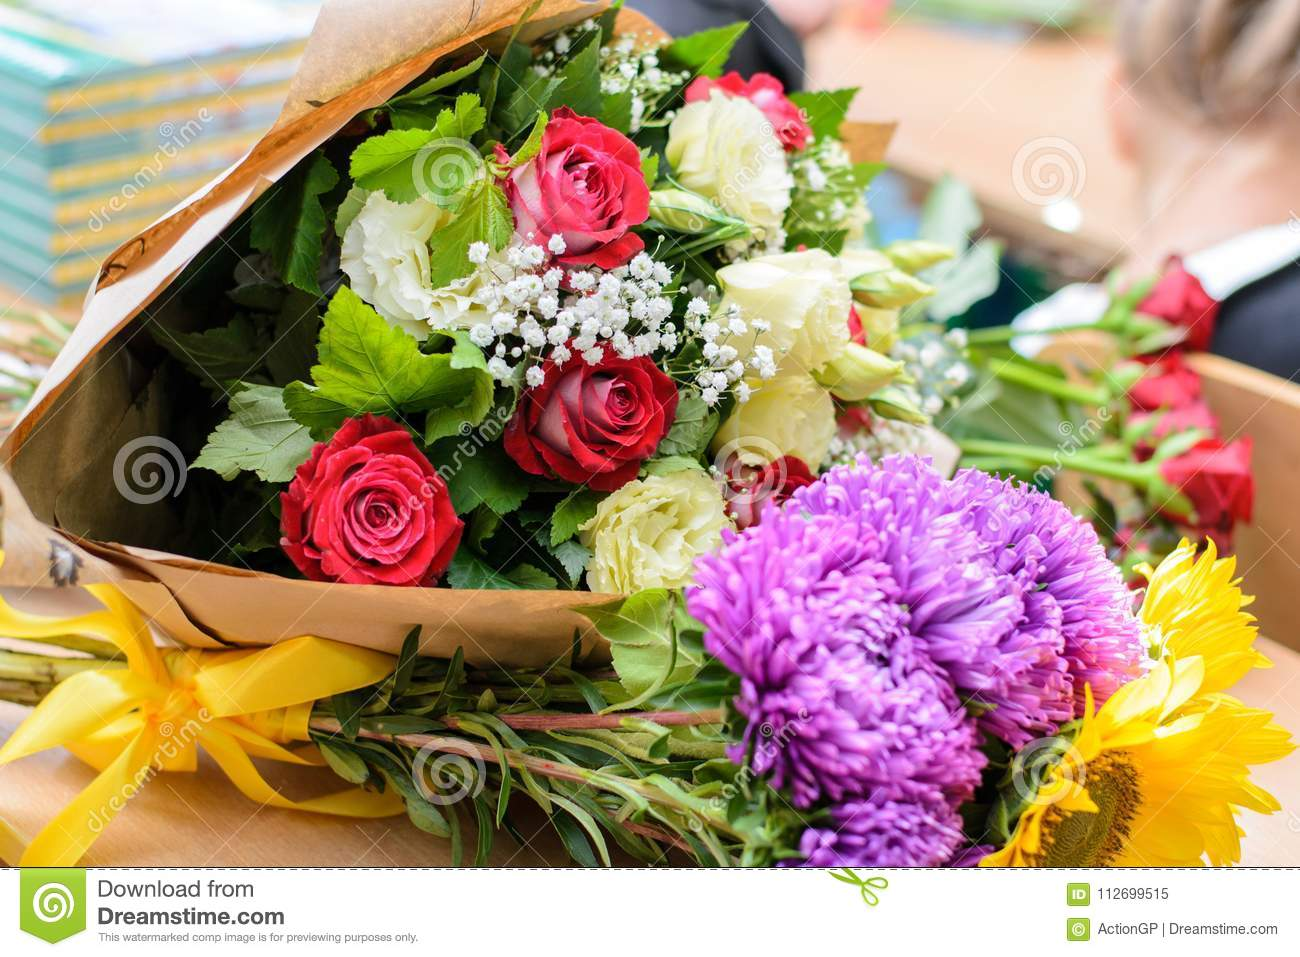 Concept Of Getting Bouquets Of Flowers On Birthday The First Of